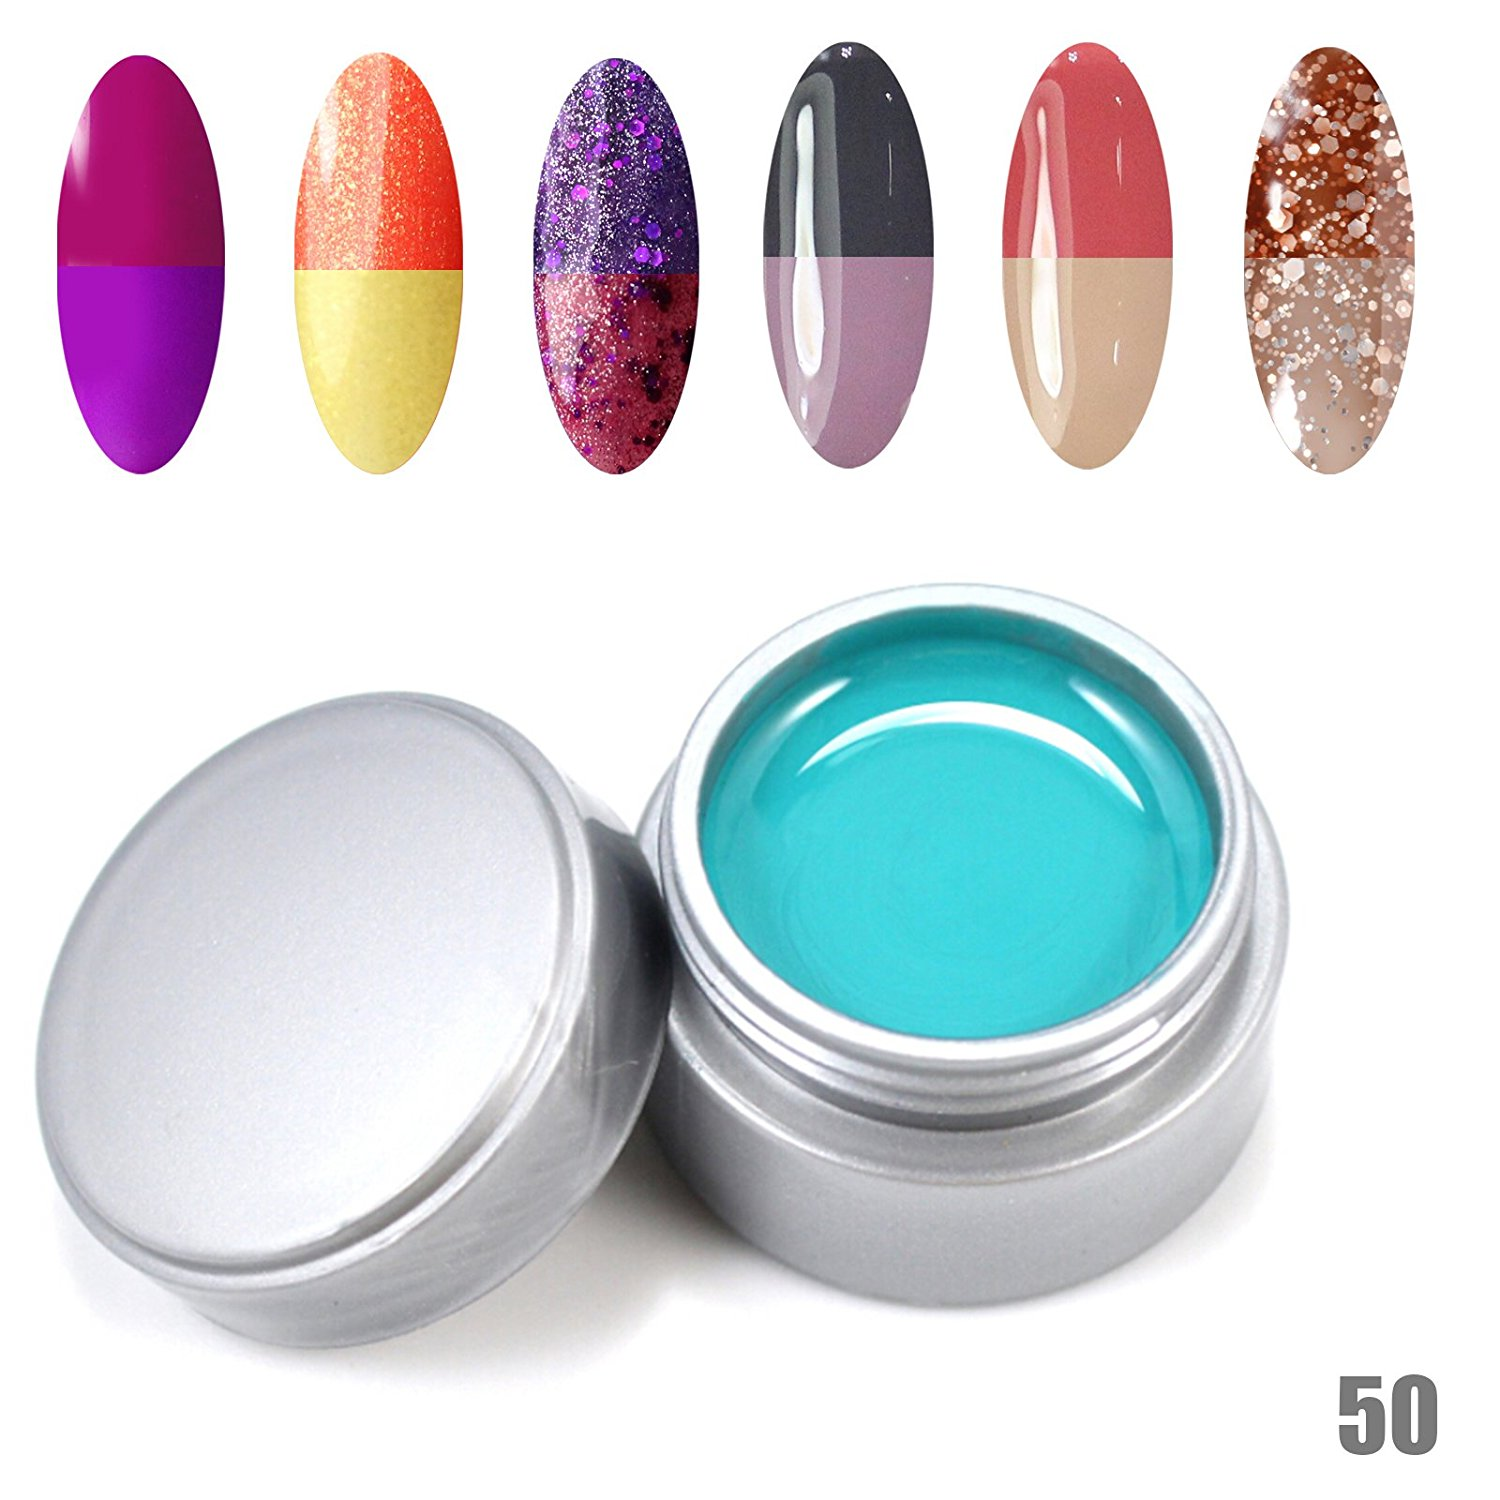 Perfect Summer Long Wearing Thermal Temperature Colors Changes Chameleon 6pcs 6ml UV Gel Nails Polish Salon Artistic Painting Soak Off Nails Lacquers #50